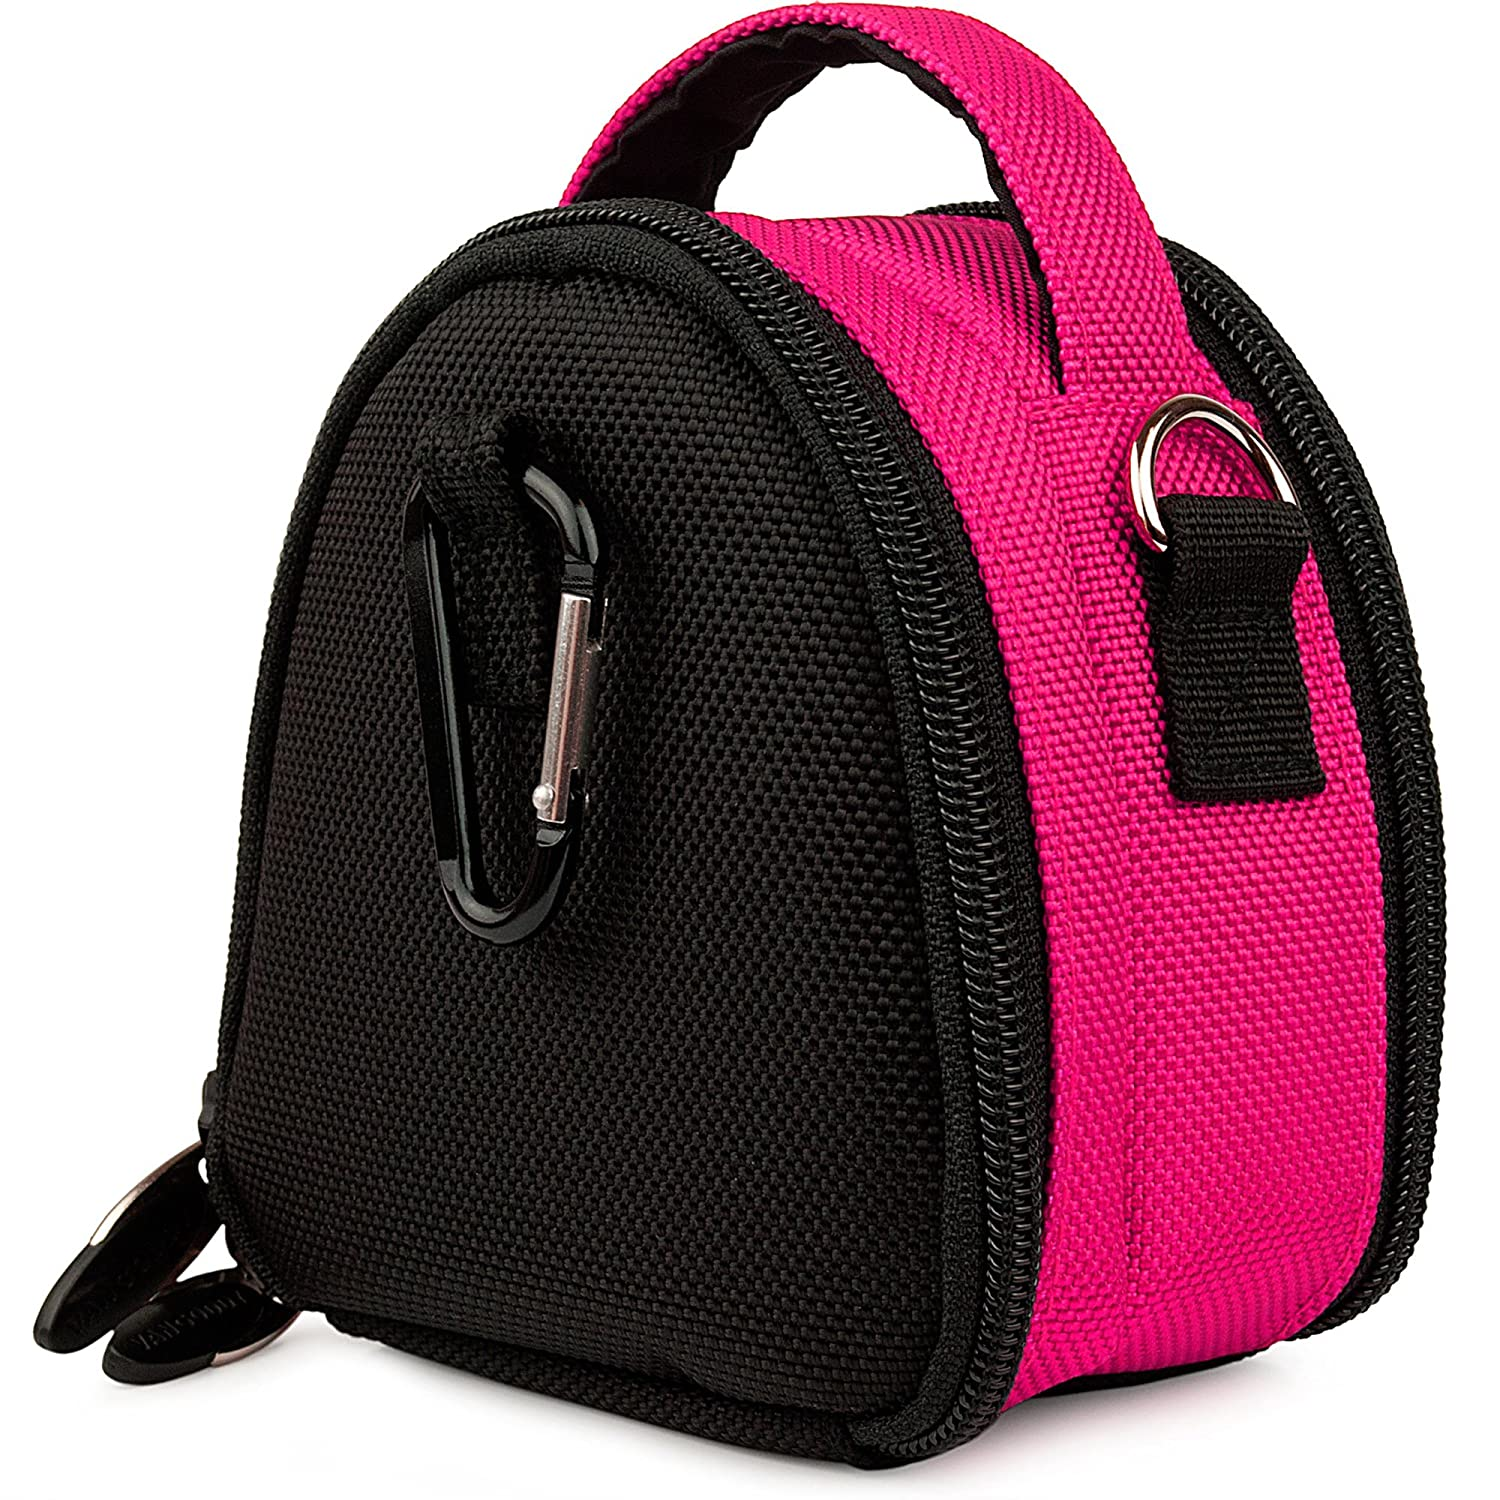 Hot Pink Camera Bag Case for Samsung AQ100 CL80 DualView ST100 DualView ST700 ES80 HZ10W MultiView MV800 PL20 PL90 PL200 Point and Shoot Digital Camera and Pink 6 Inch Mini Tripod